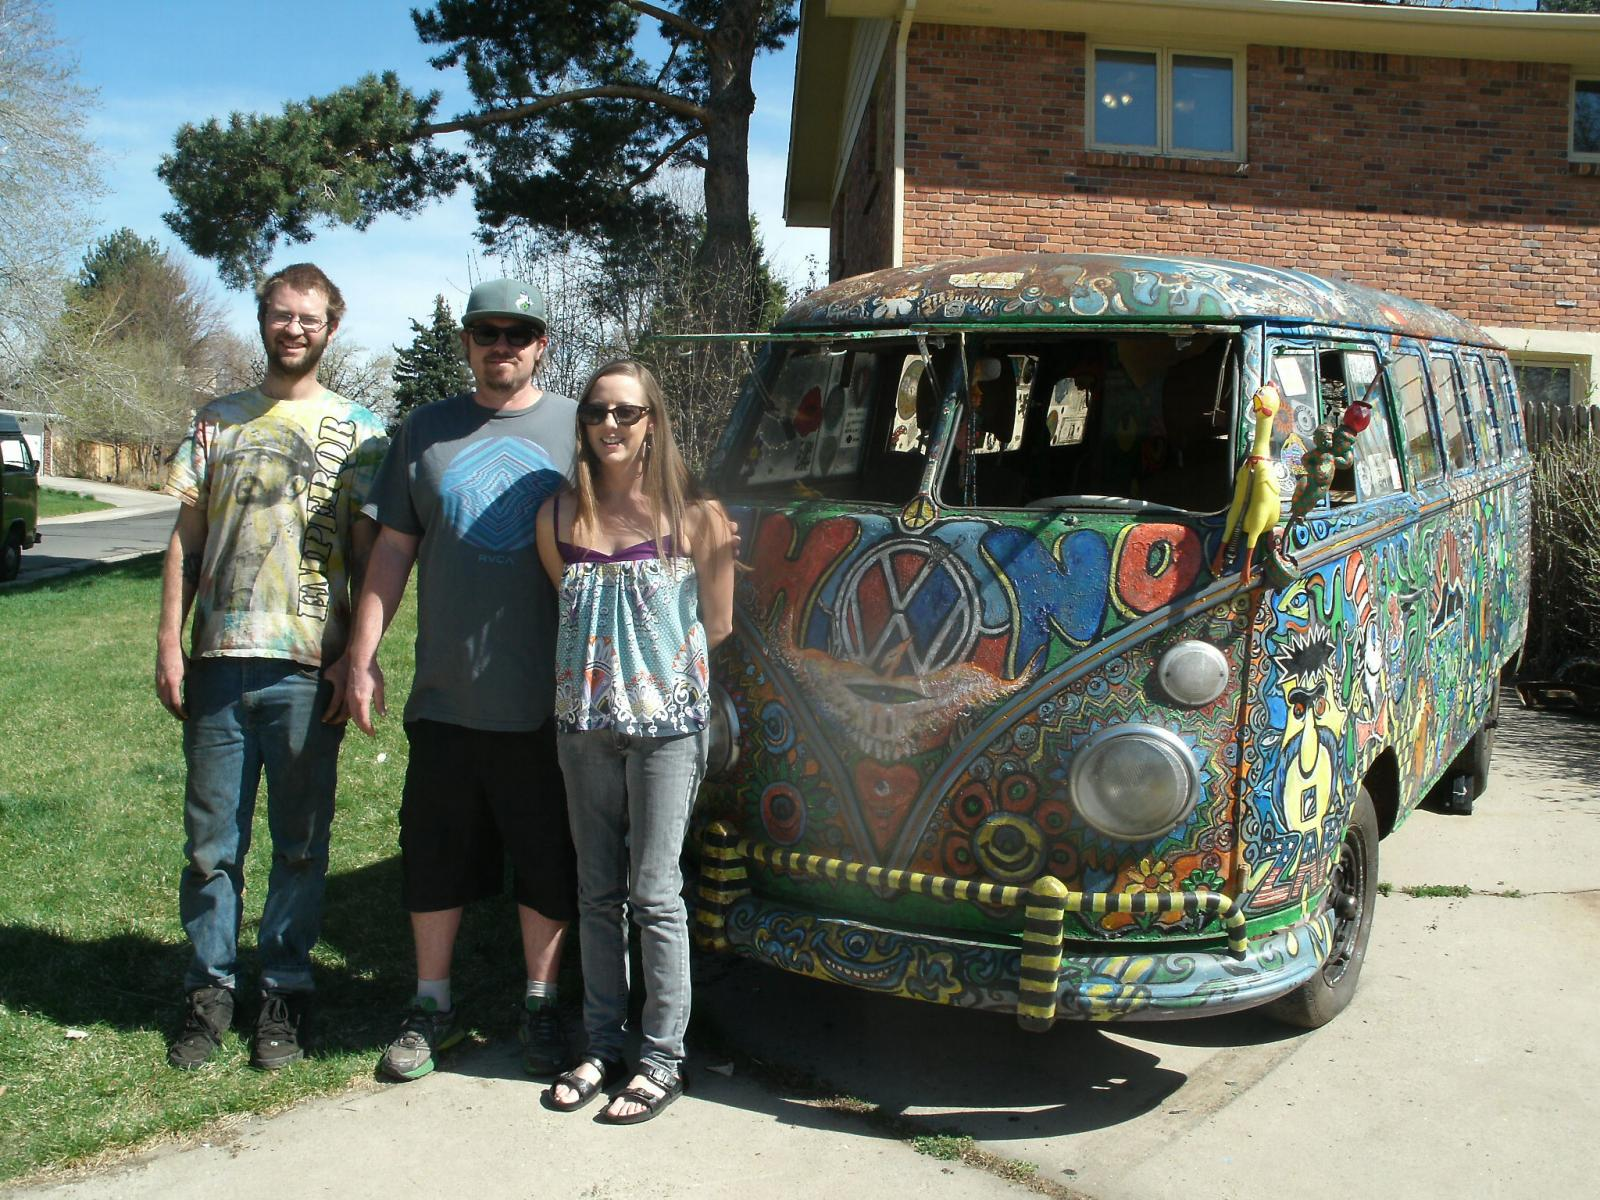 Artist and Music Inspired VWs.